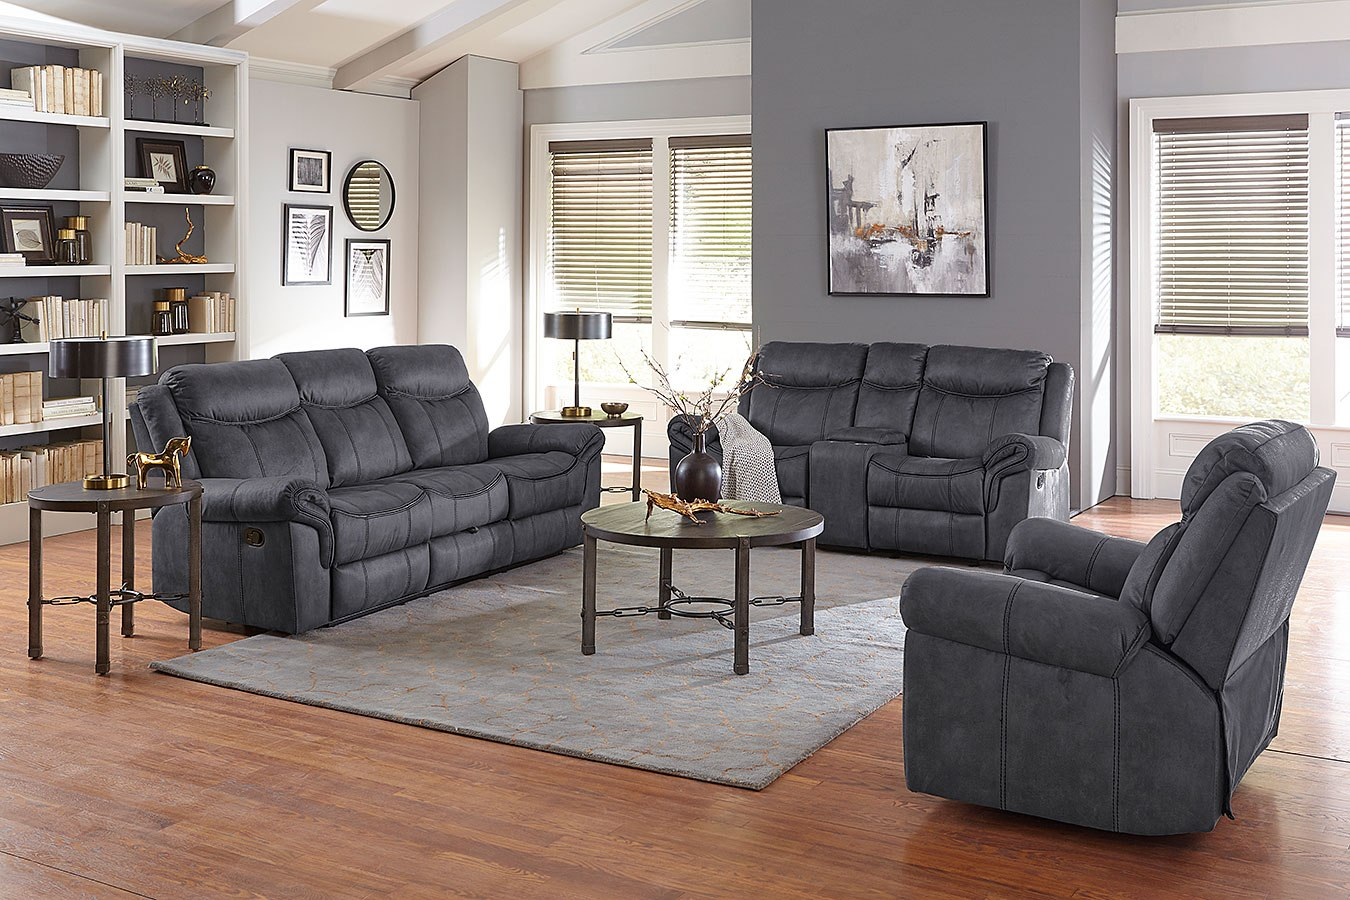 knoxville reclining living room set charcoal standard